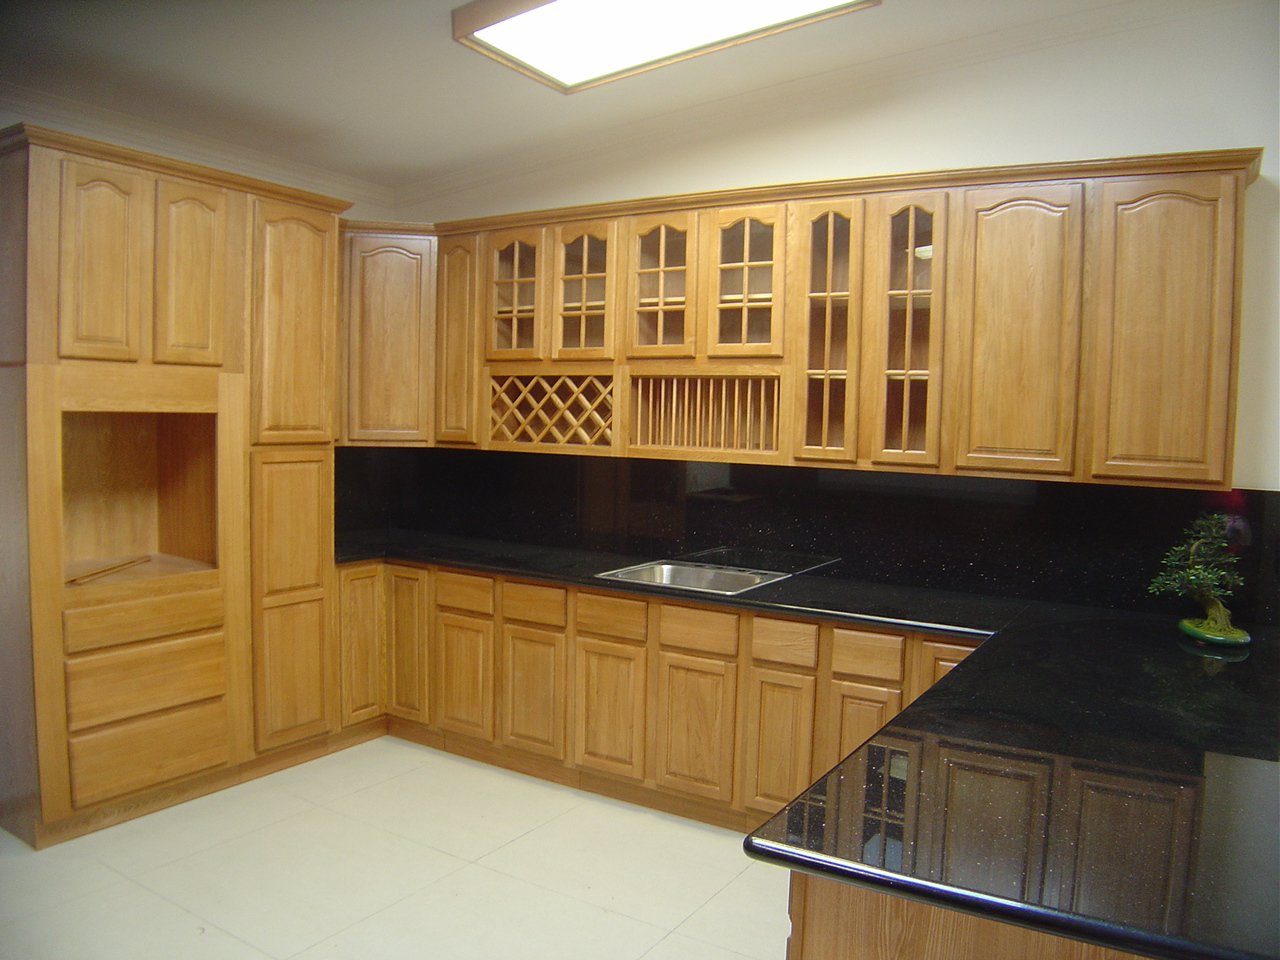 Premium Oak Kitchen Cabinets & Natural Oak Kitchen Cabinets u2013 Solid All Wood Kitchen Cabinetry